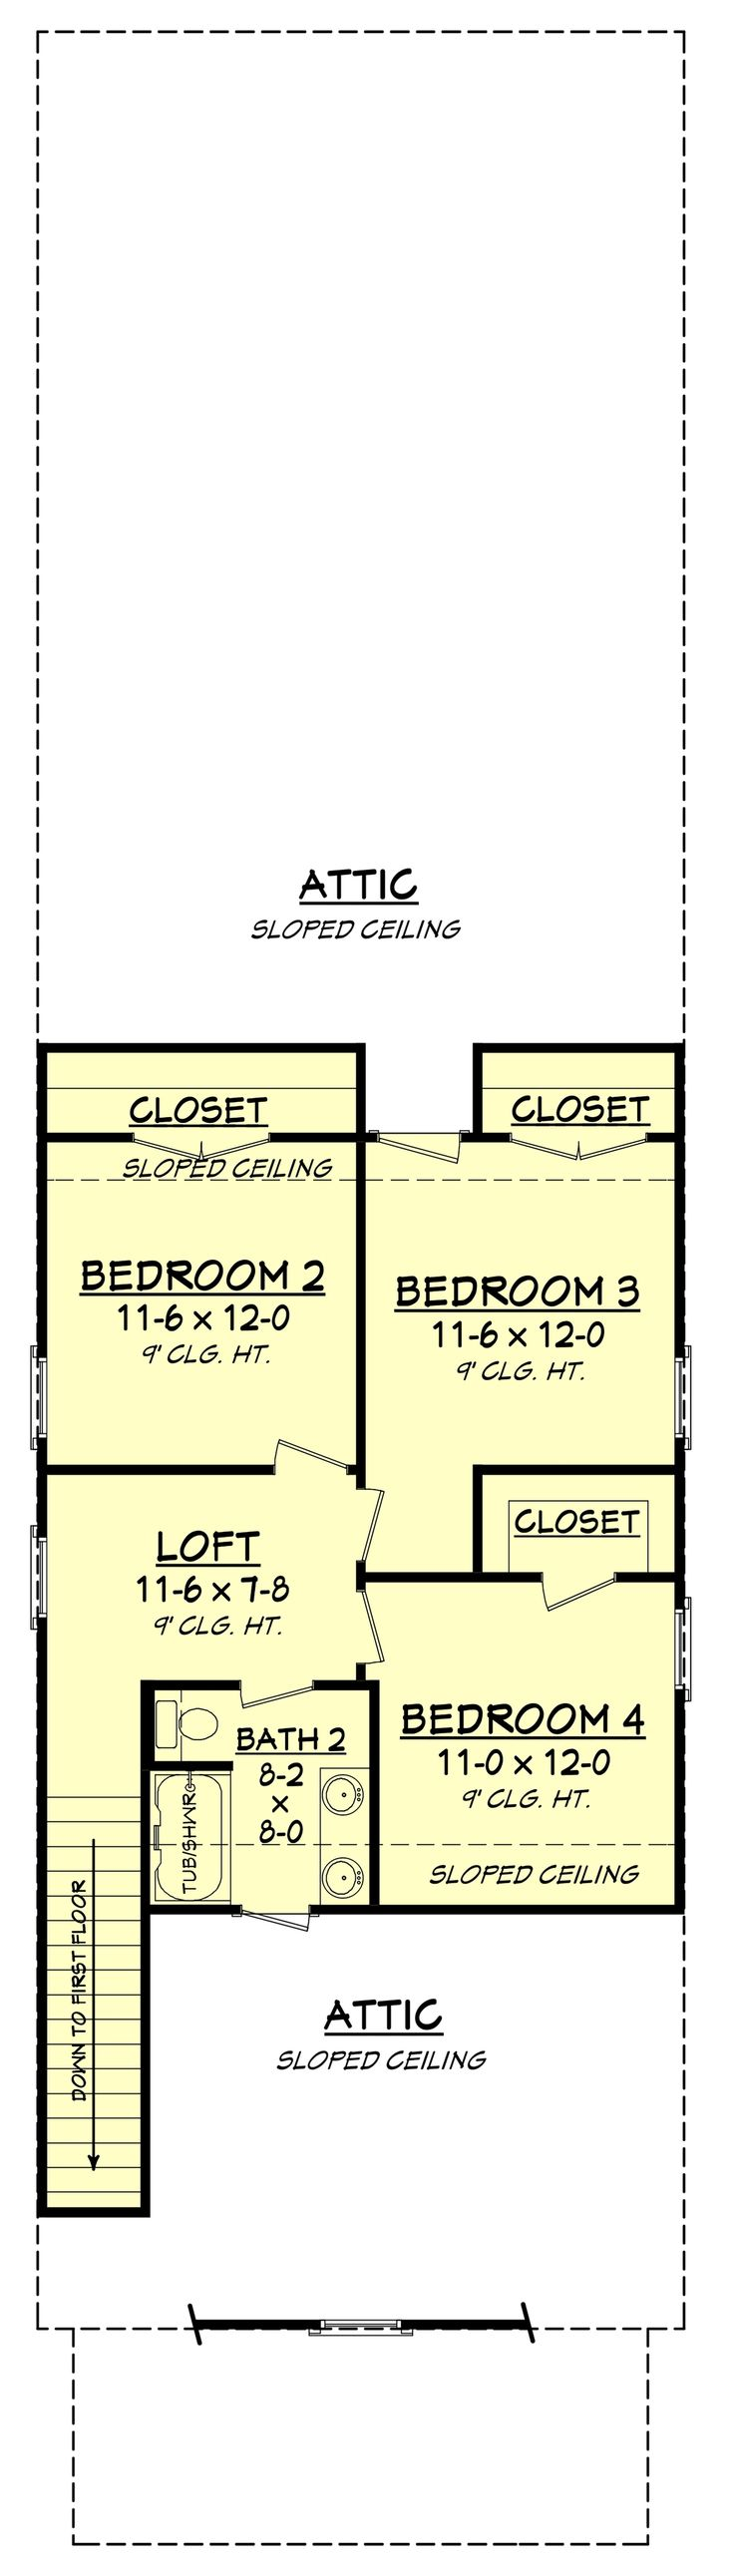 100 cool house com 16 best cottage house plans images on 172 best house plans images on pinterest find this pin and more on house plans by